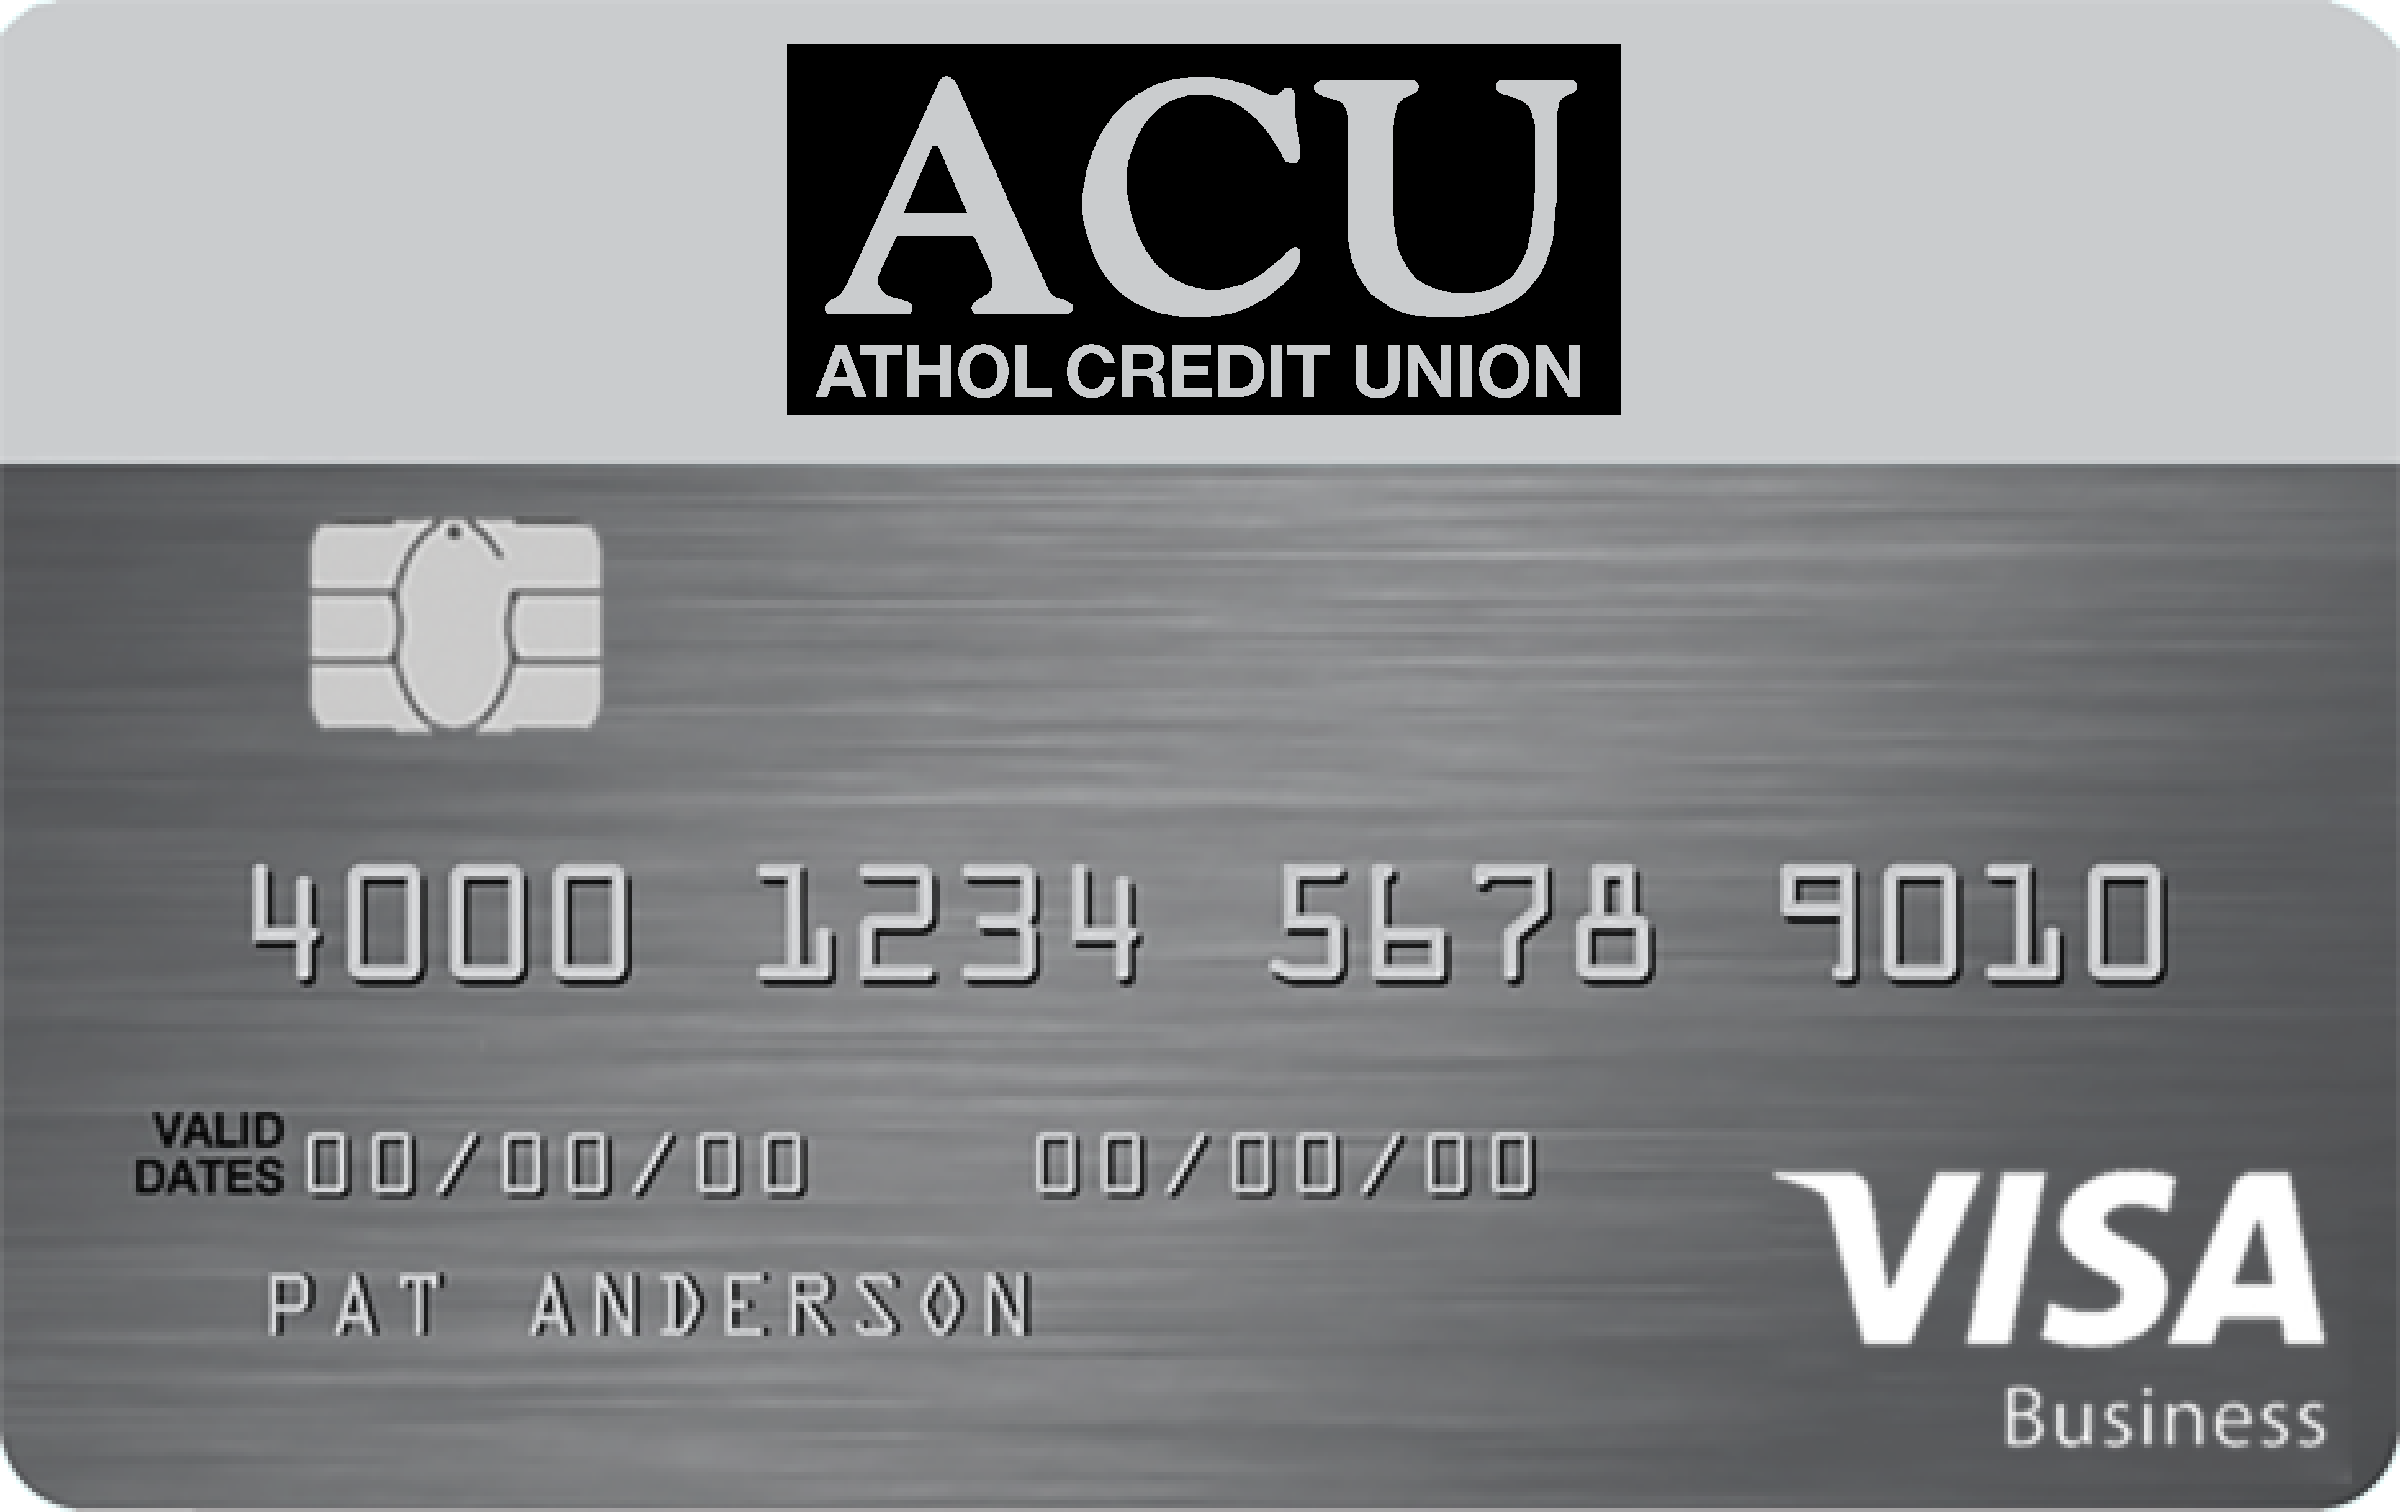 Athol Credit Union